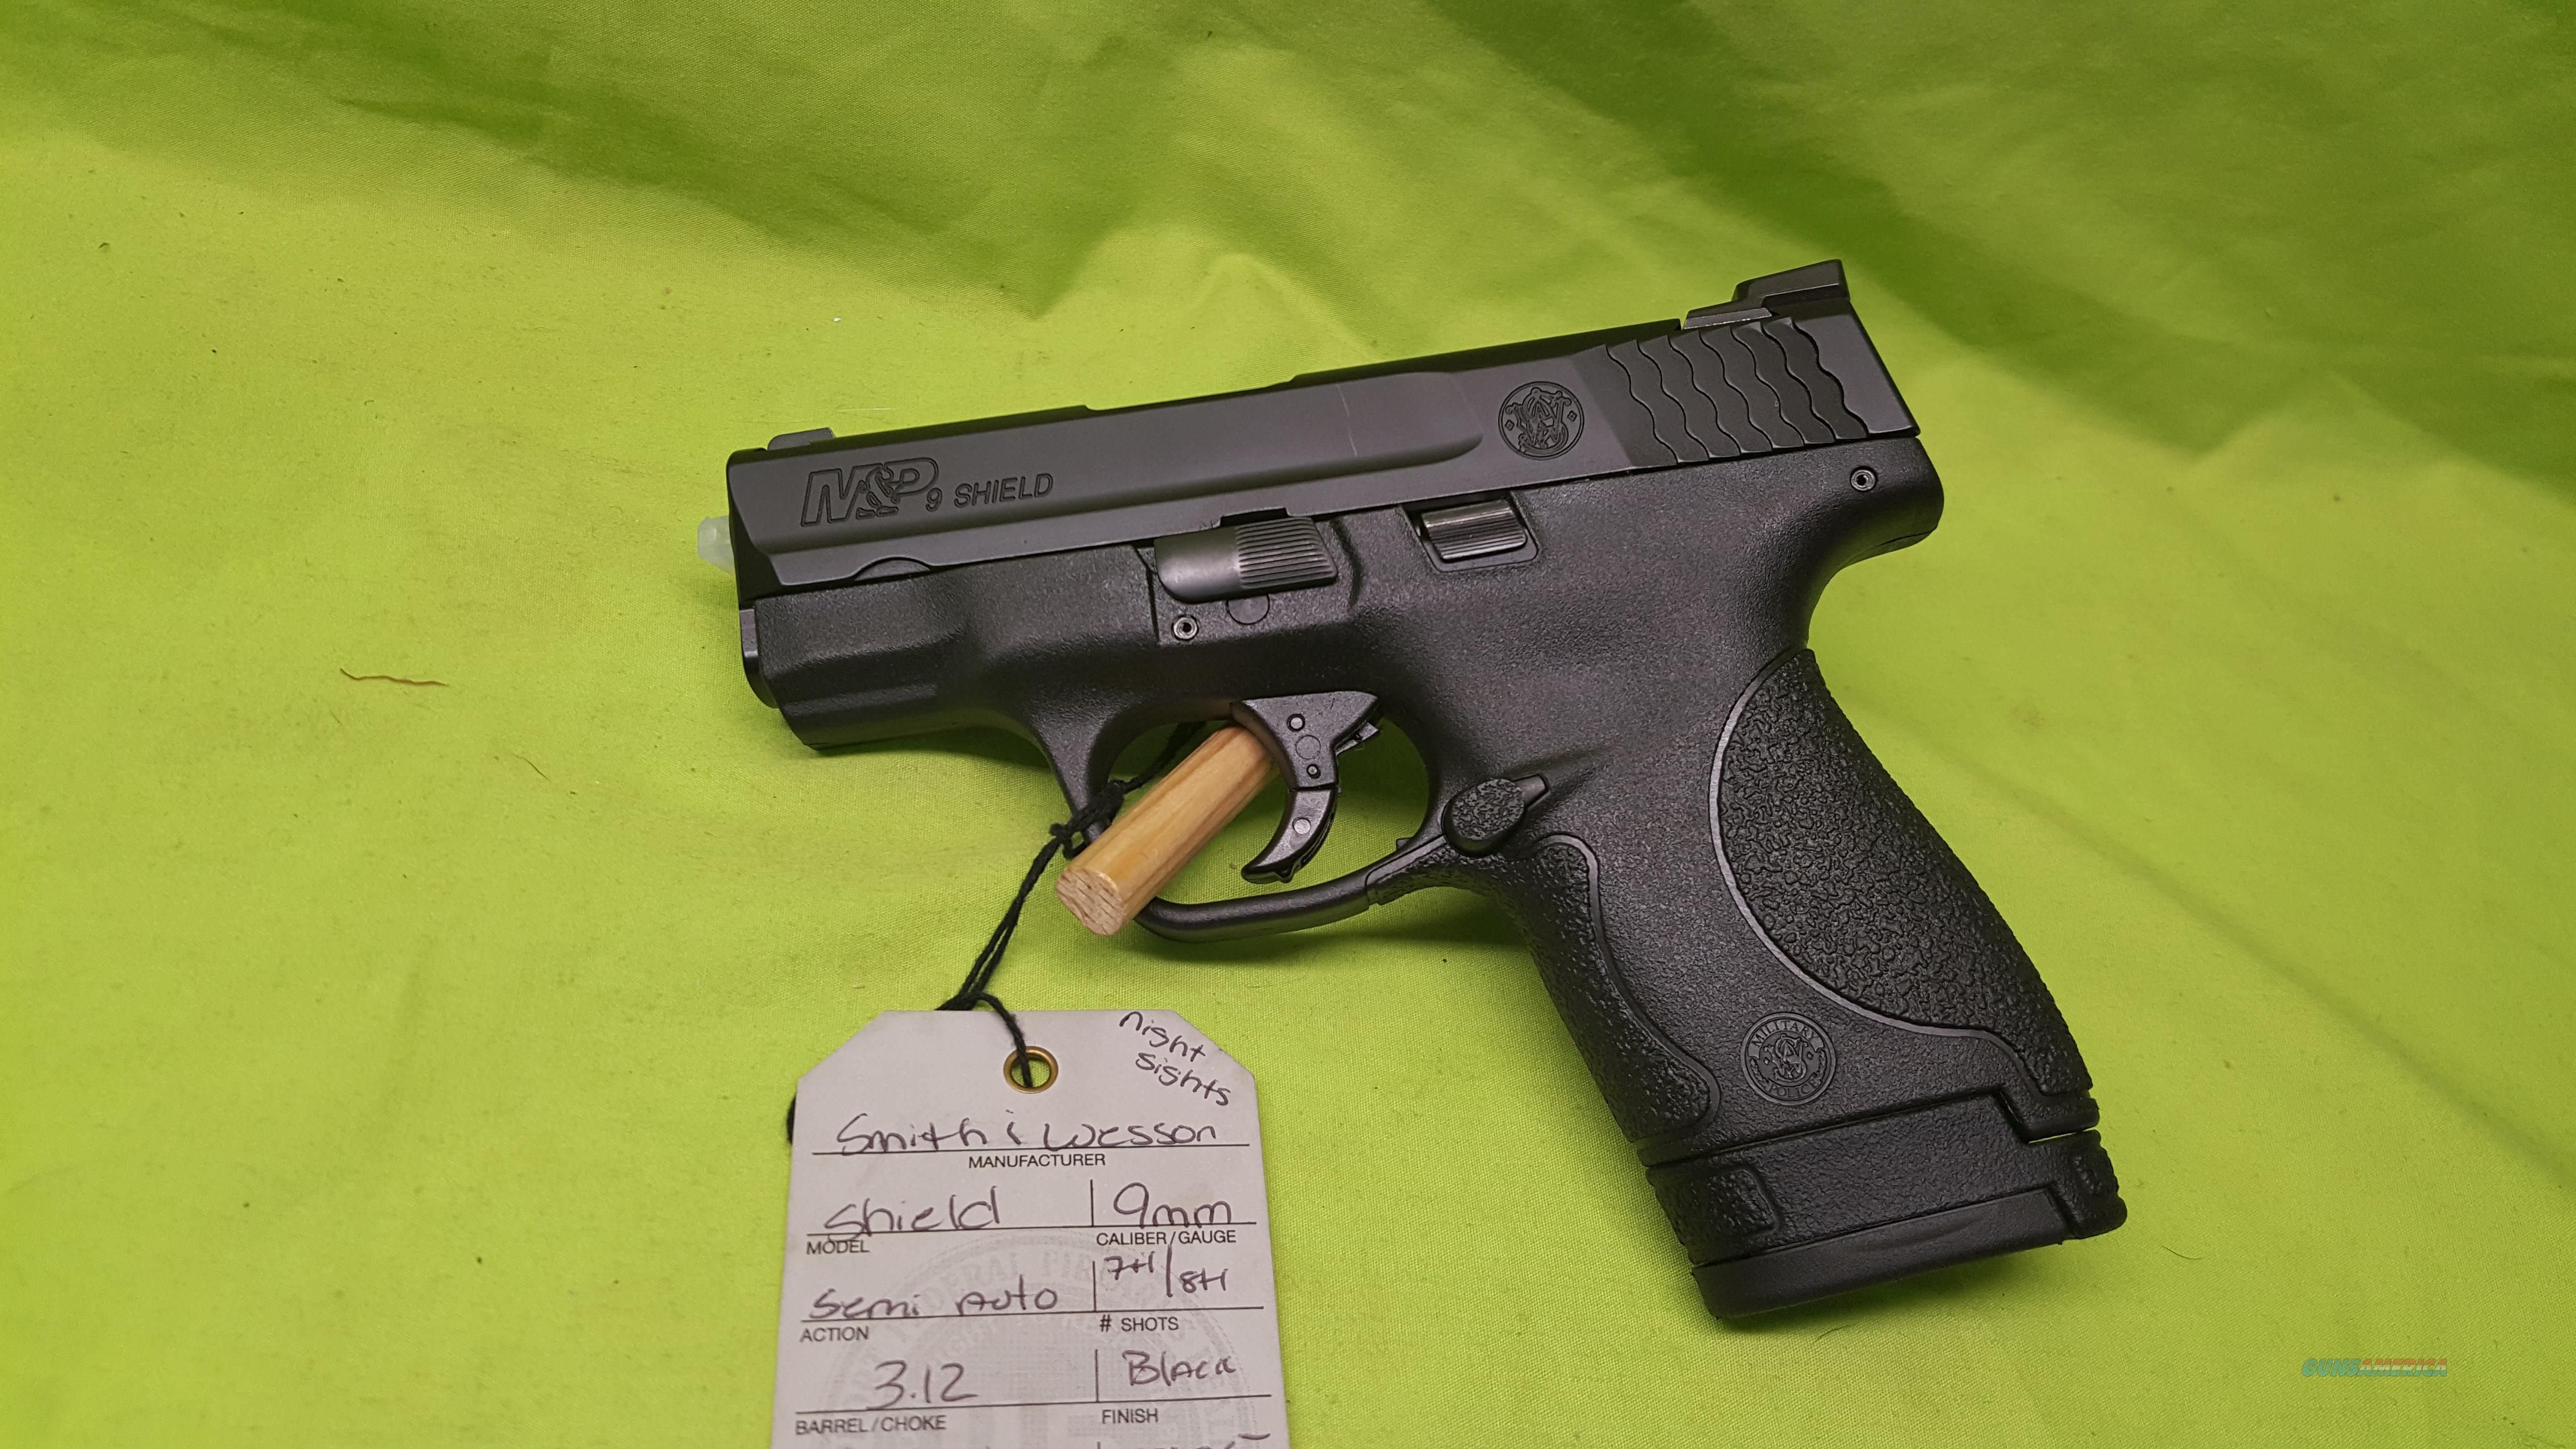 SMITH & WESSON M&P 9 SHIELD 9MM 7/8RD NIGHT SIGHTS  Guns > Pistols > Smith & Wesson Pistols - Autos > Shield